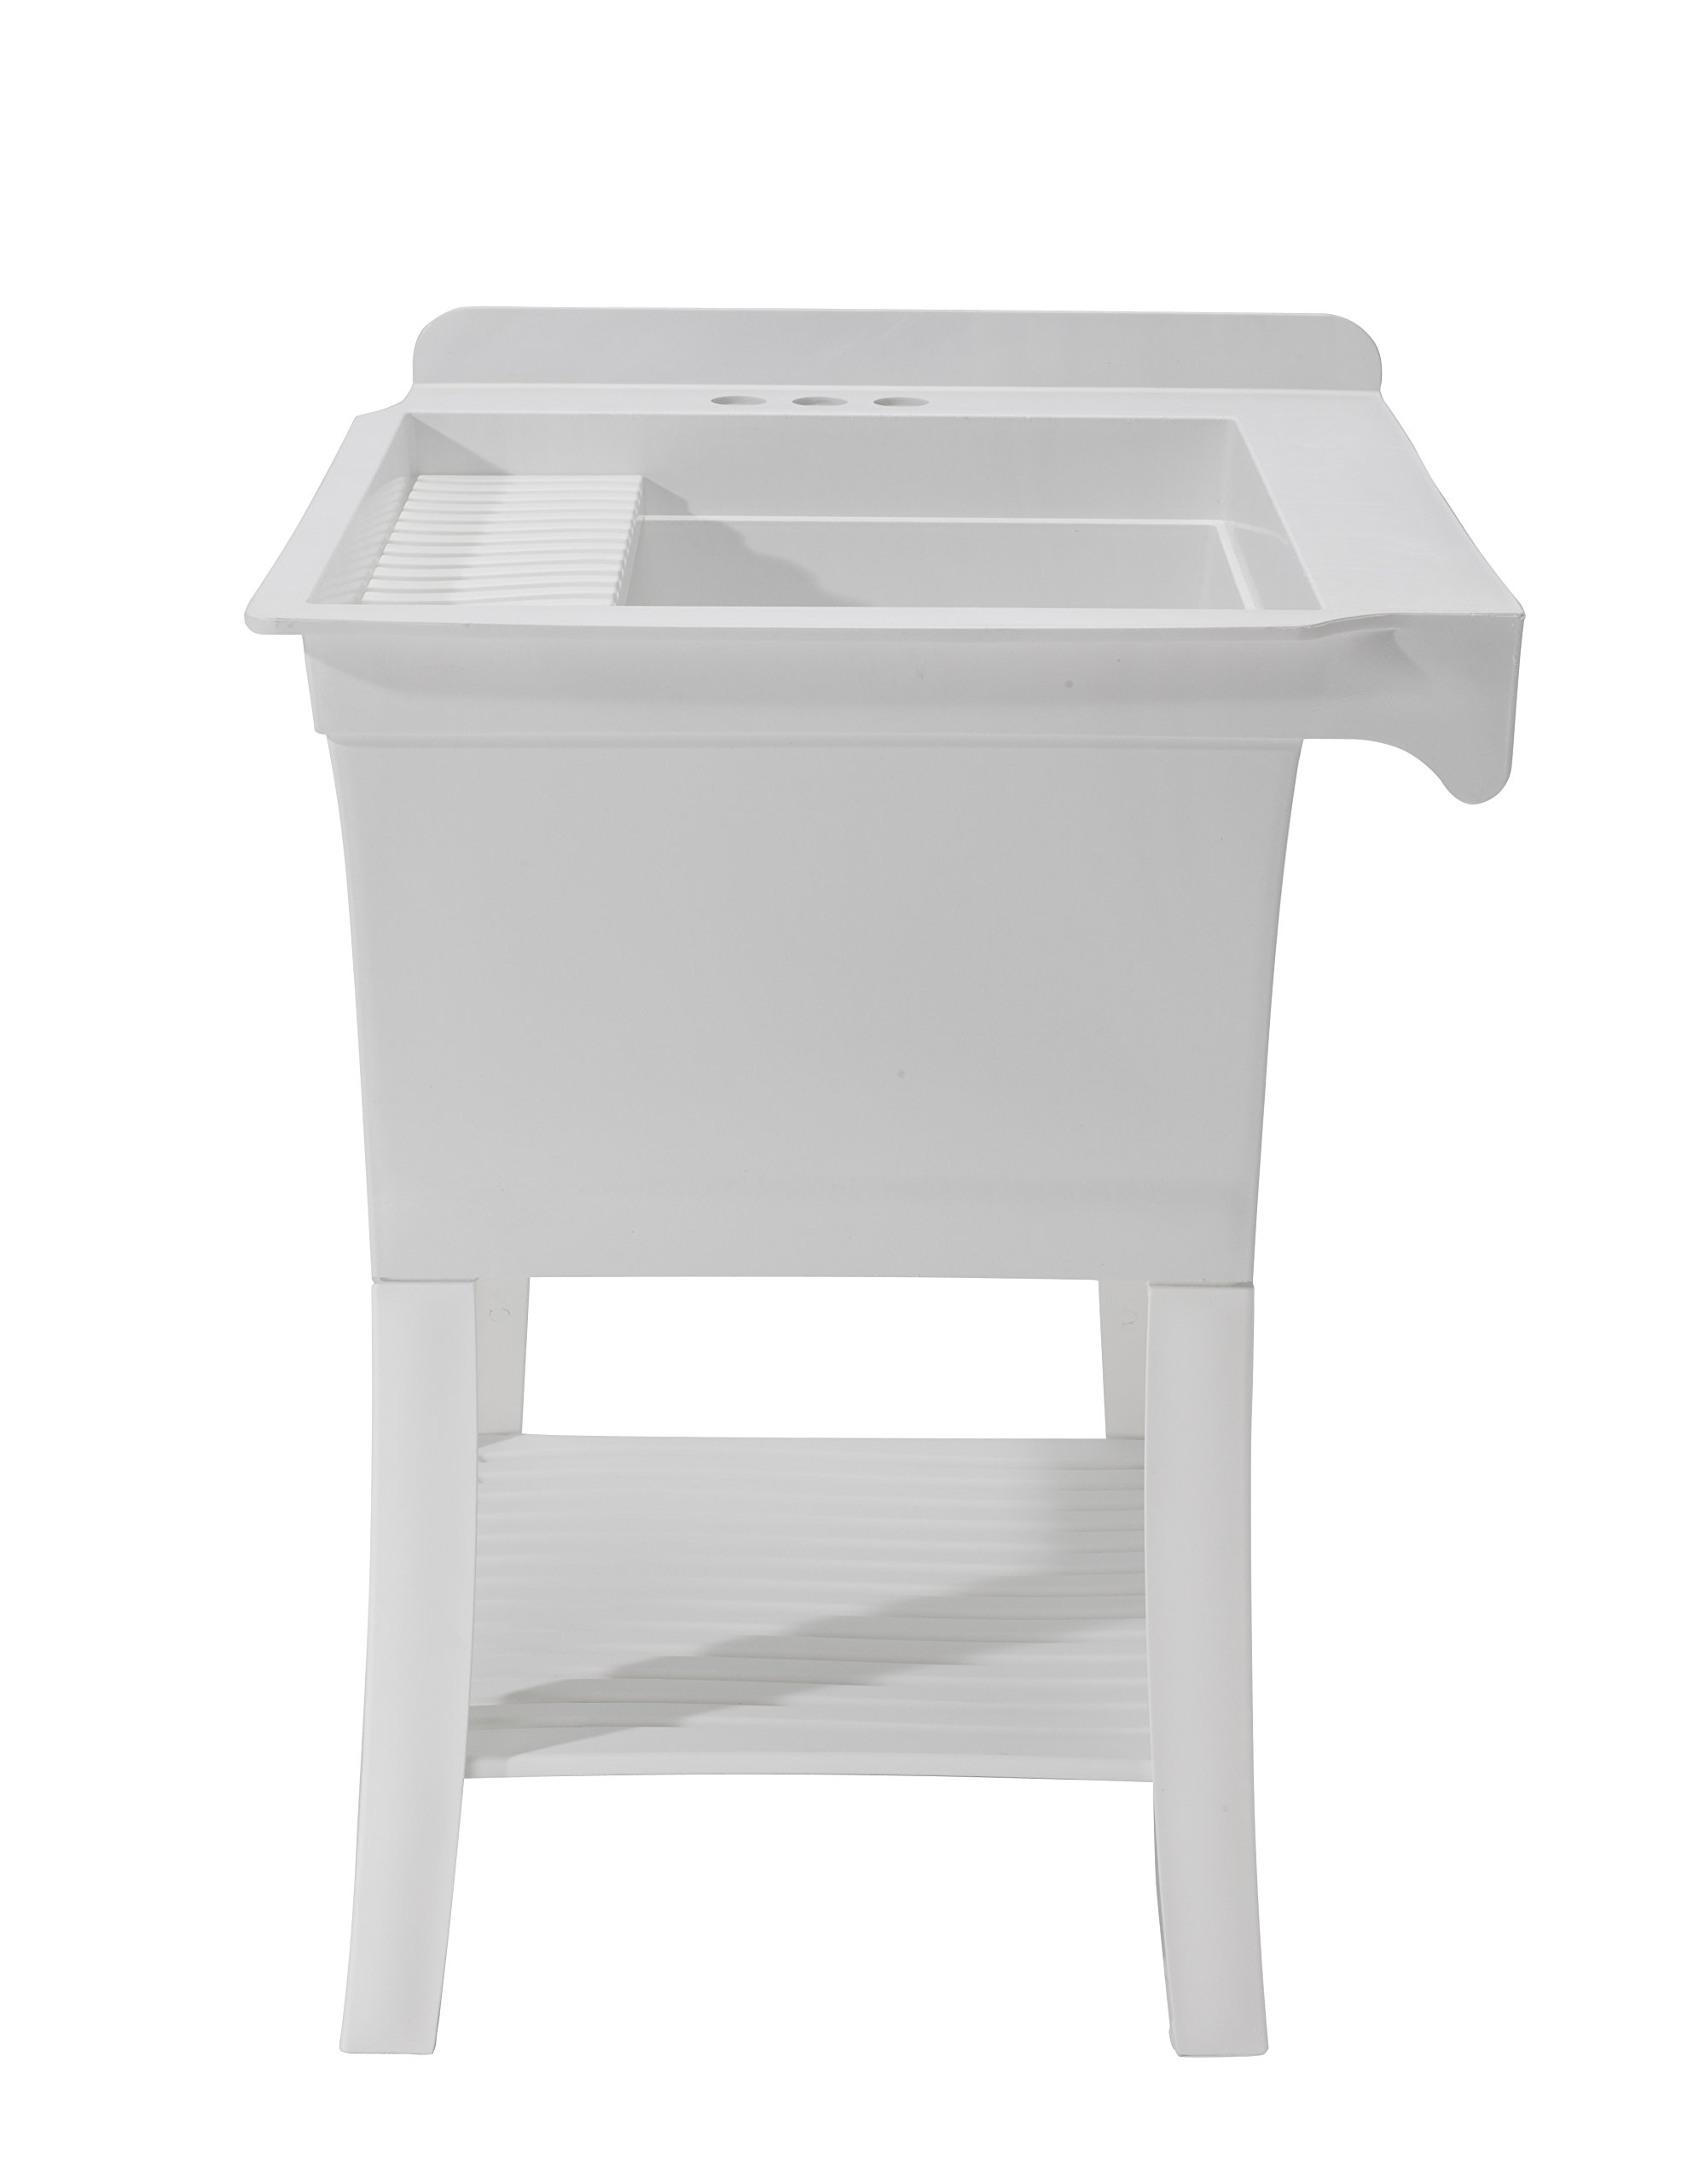 CASHEL 1980-30-01 The Maddox Workstation - Essential Sink Kit, White